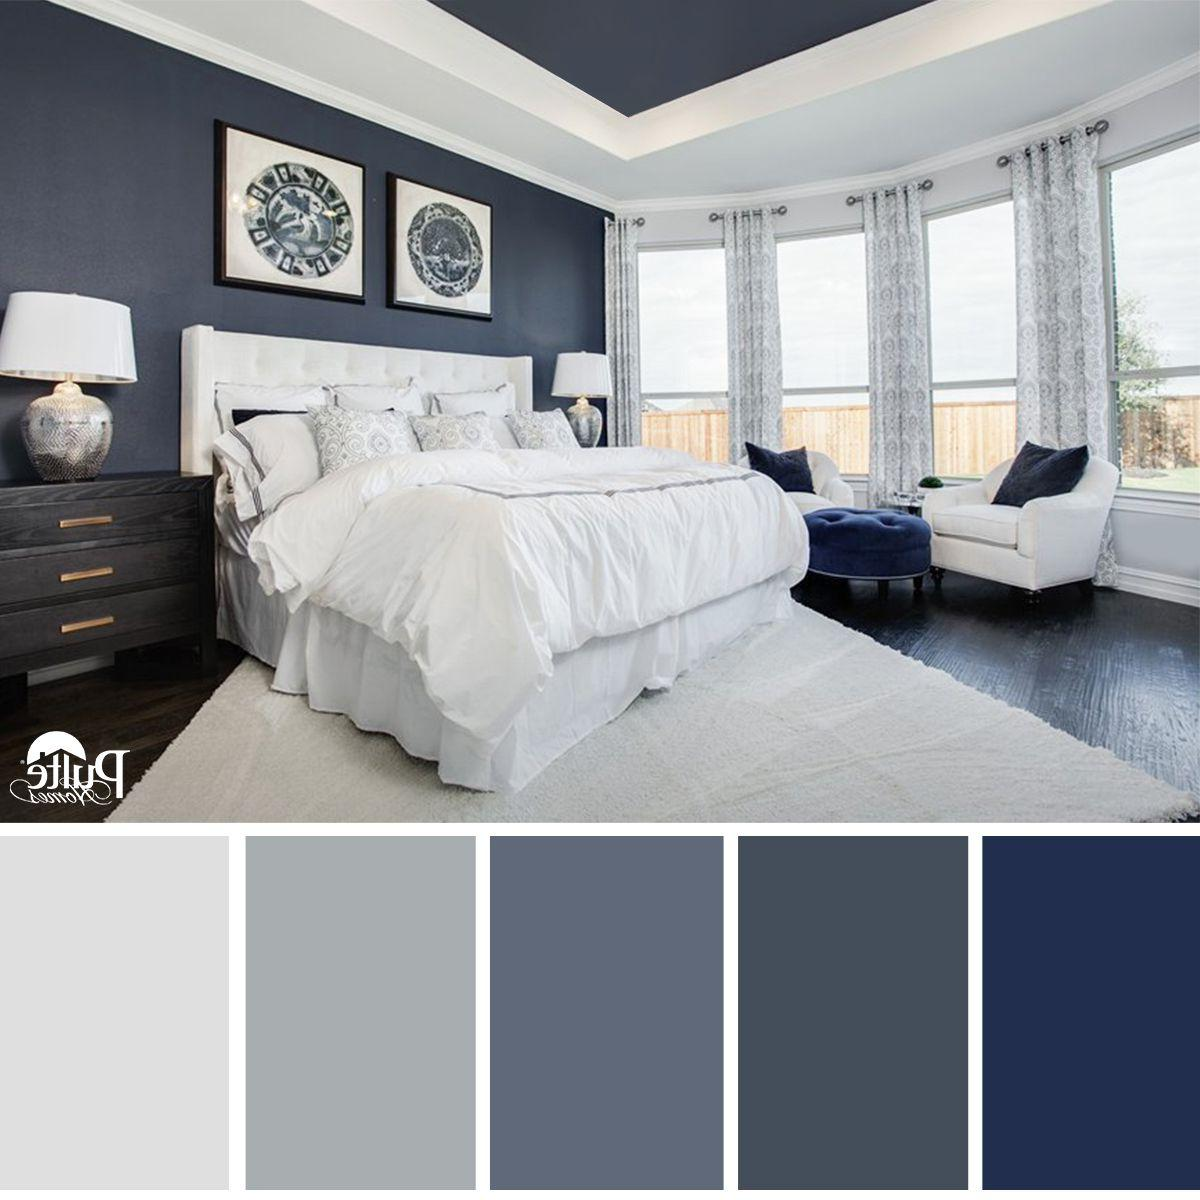 bedroom color combos This bedroom design has the right idea. The rich blue color  1200 X 1200